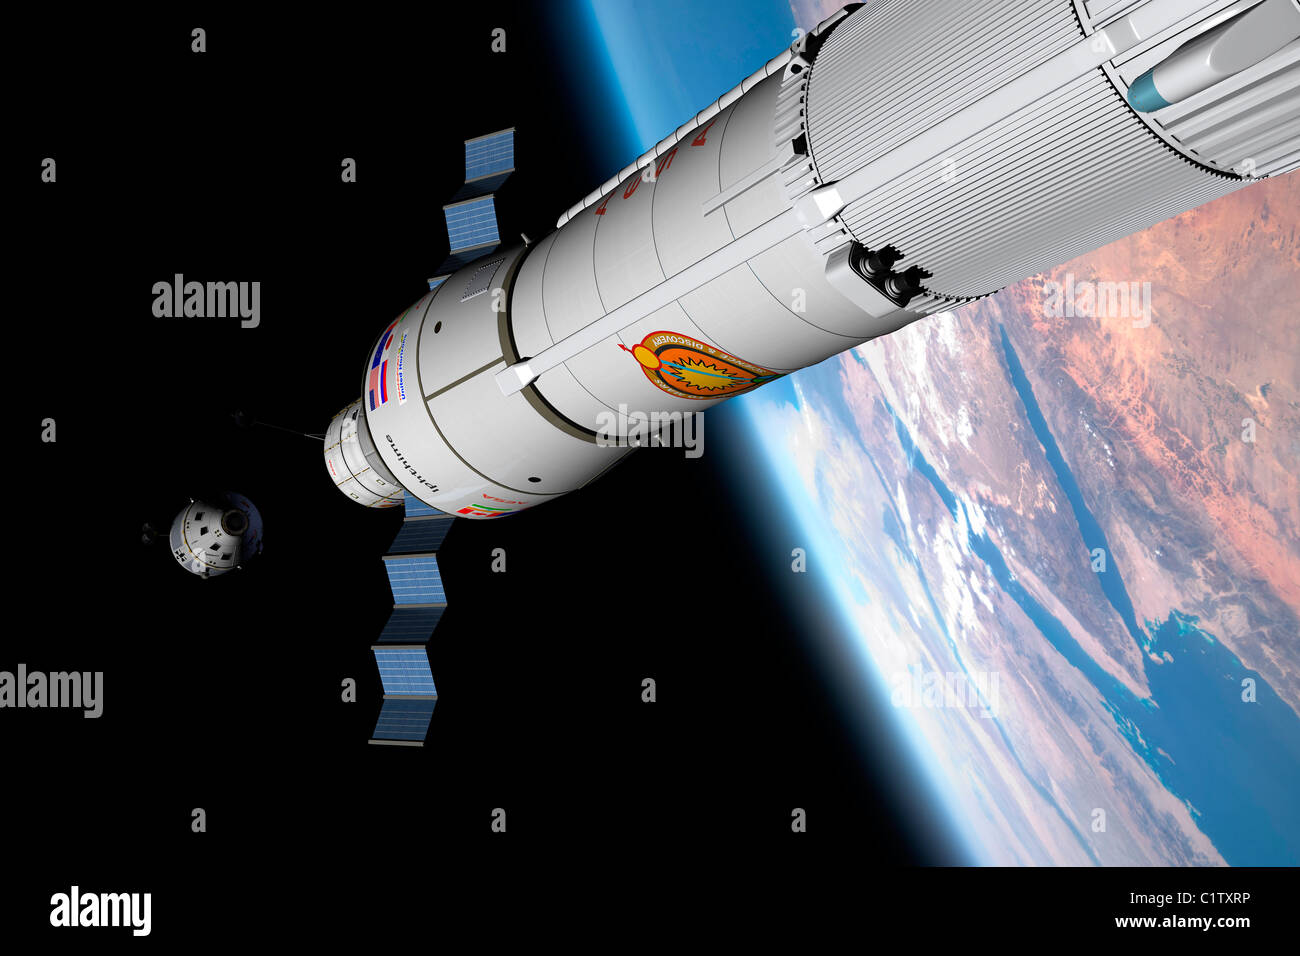 A command module approaches an awaiting rocket in Earth orbit. - Stock Image